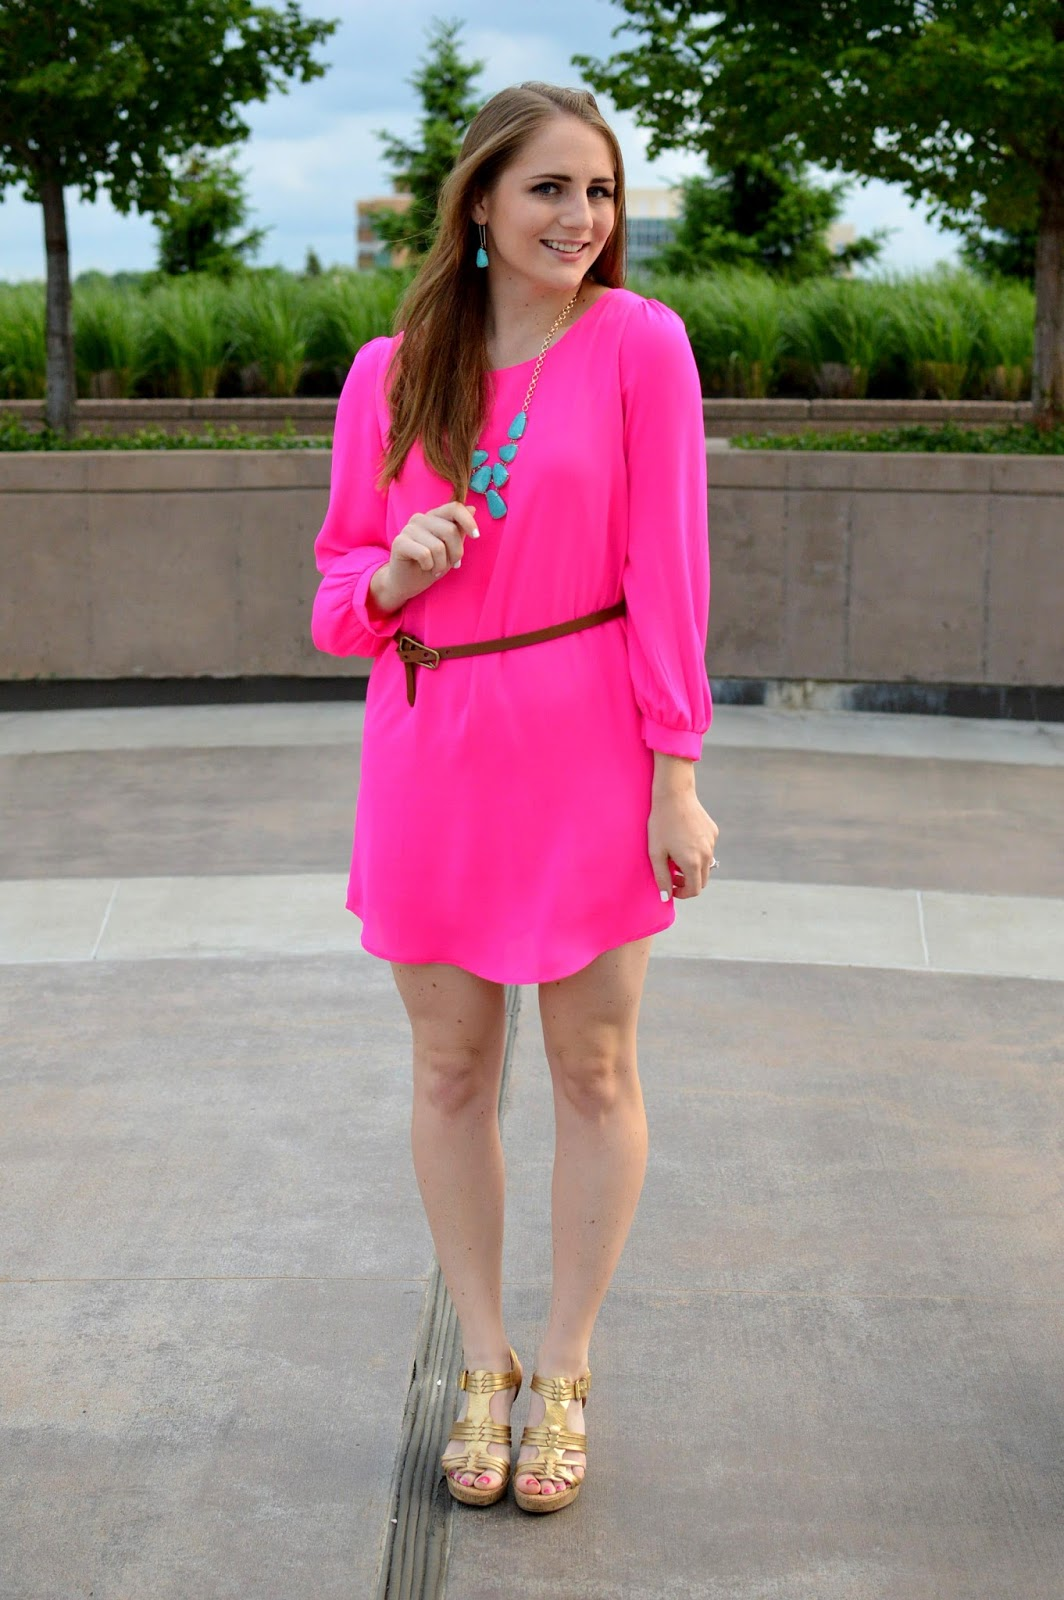 pink and turquoise | pink dress with a turquoise necklace | date night outfits for spring | spring date night looks | how to style your pink dress | what to wear with a turquoise necklace | spring outfit ideas | a memory of us